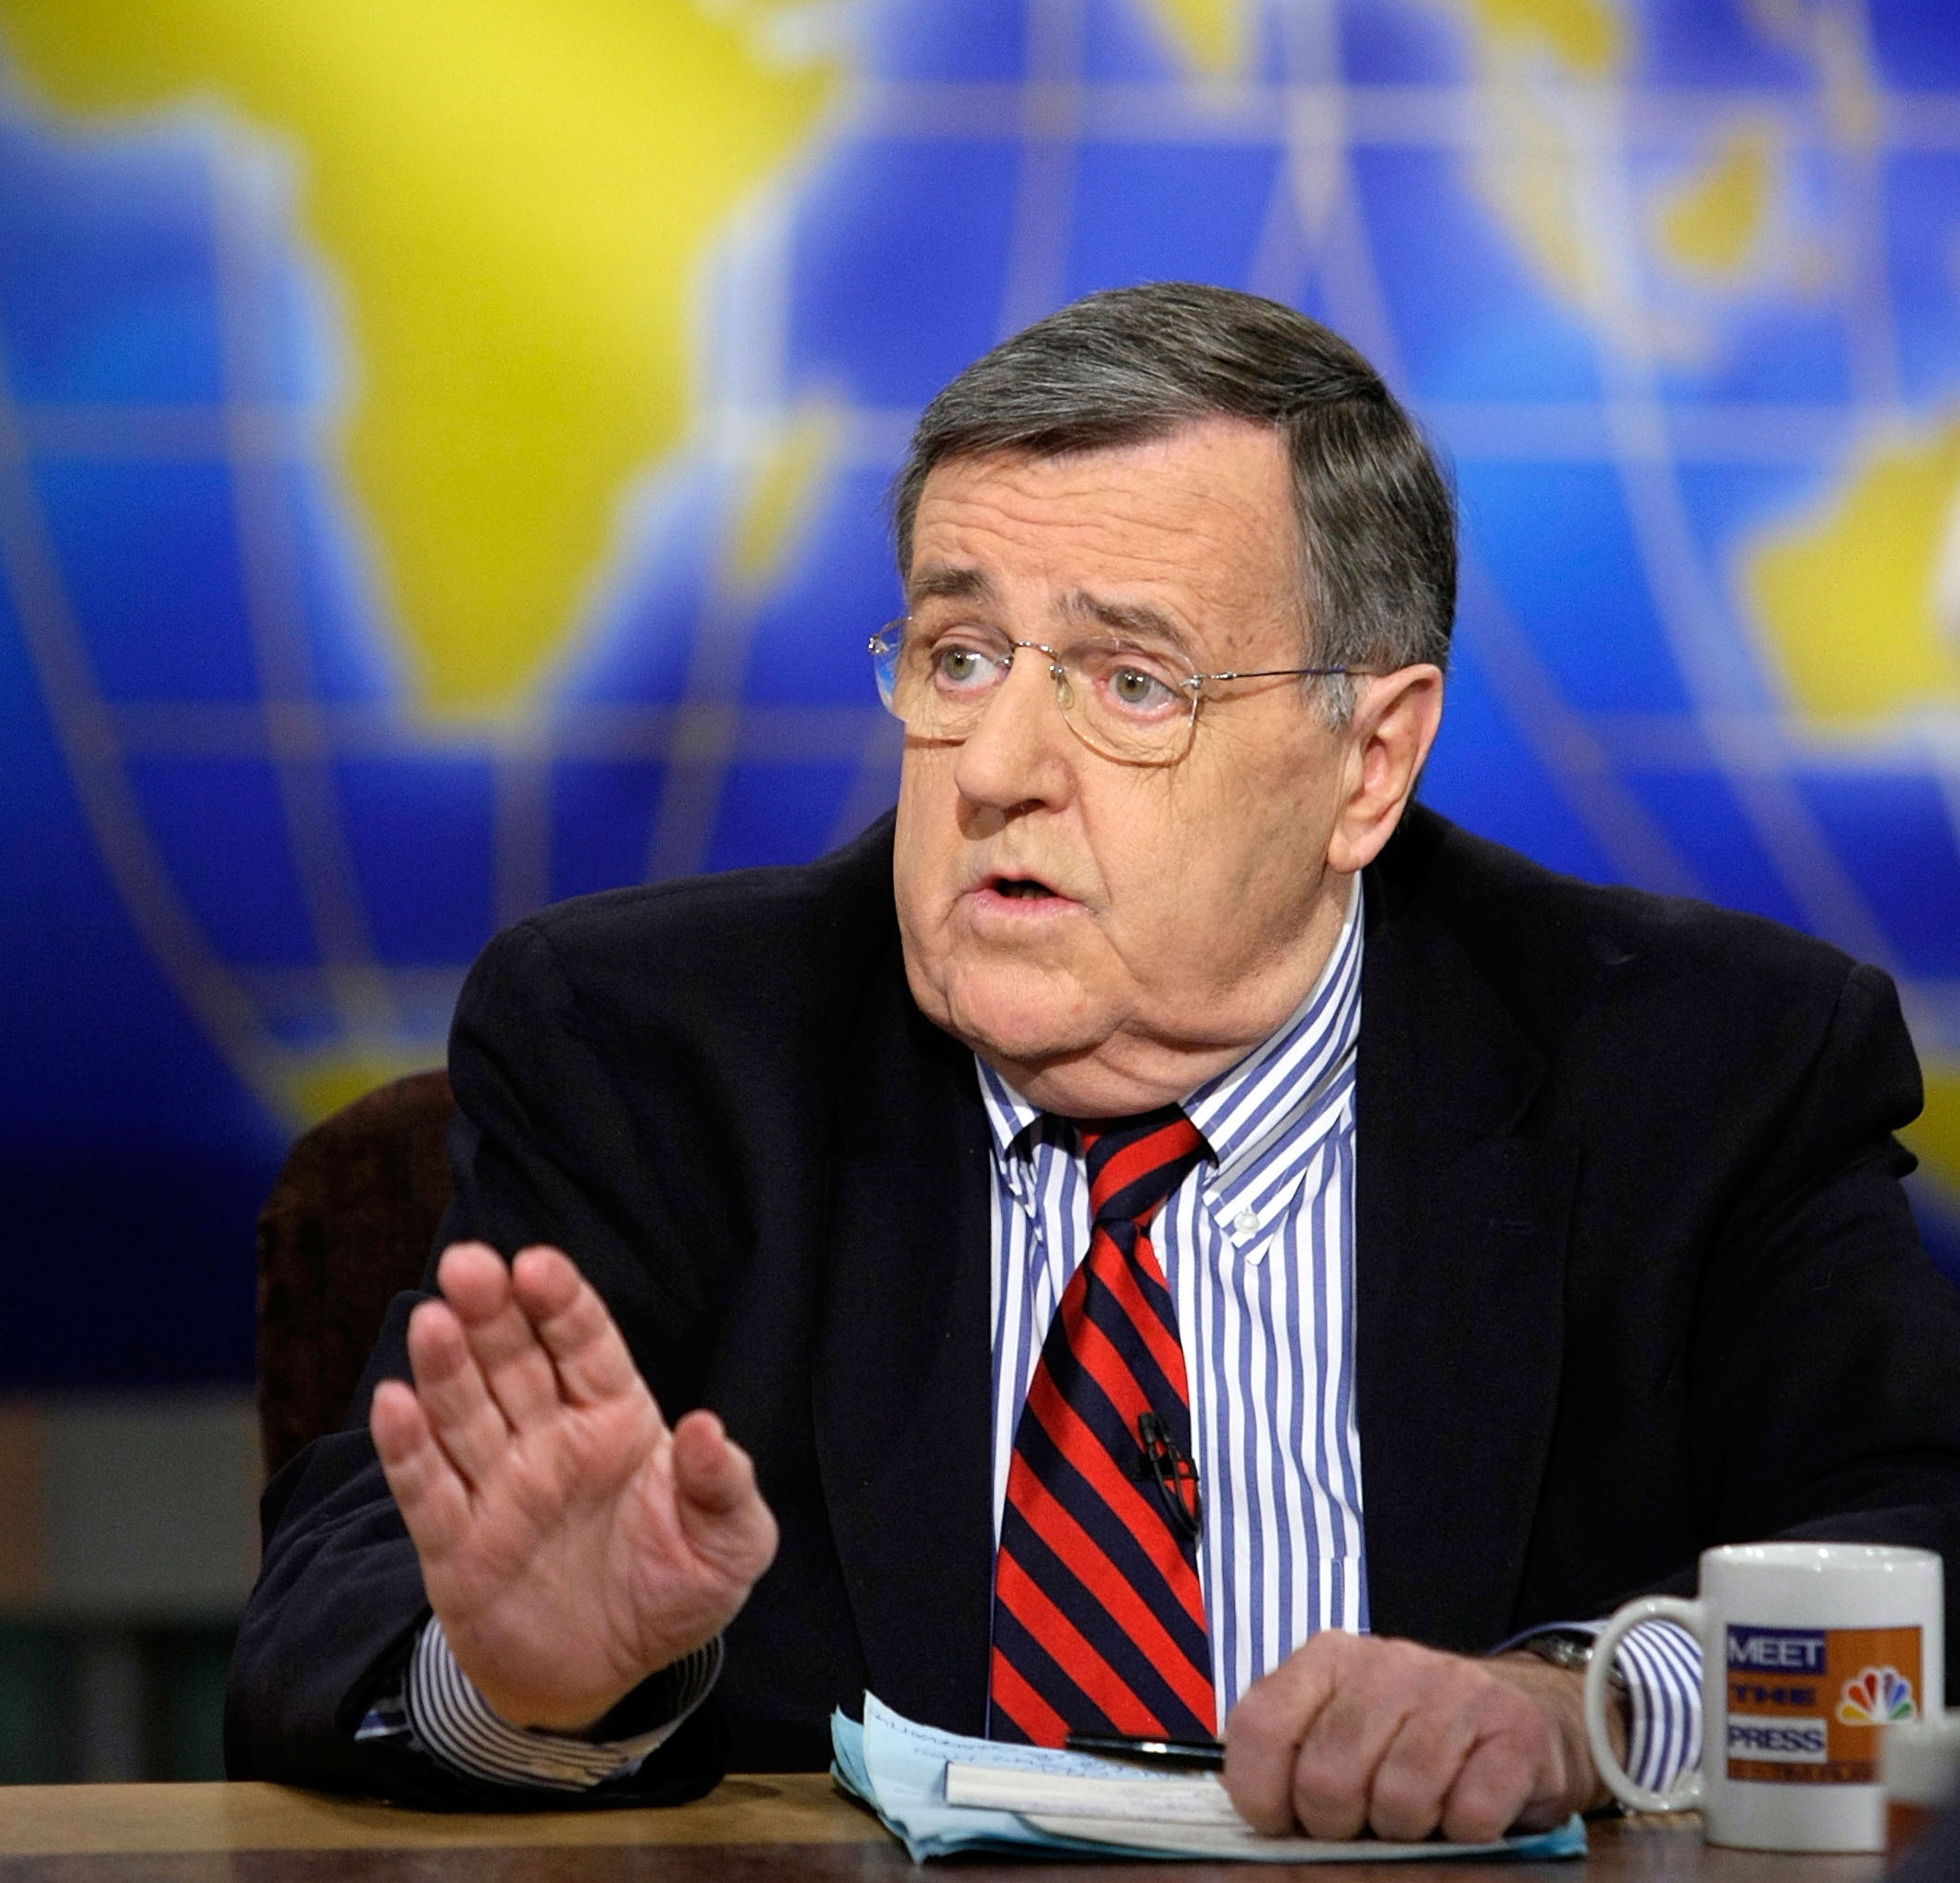 Mark Shields's quote